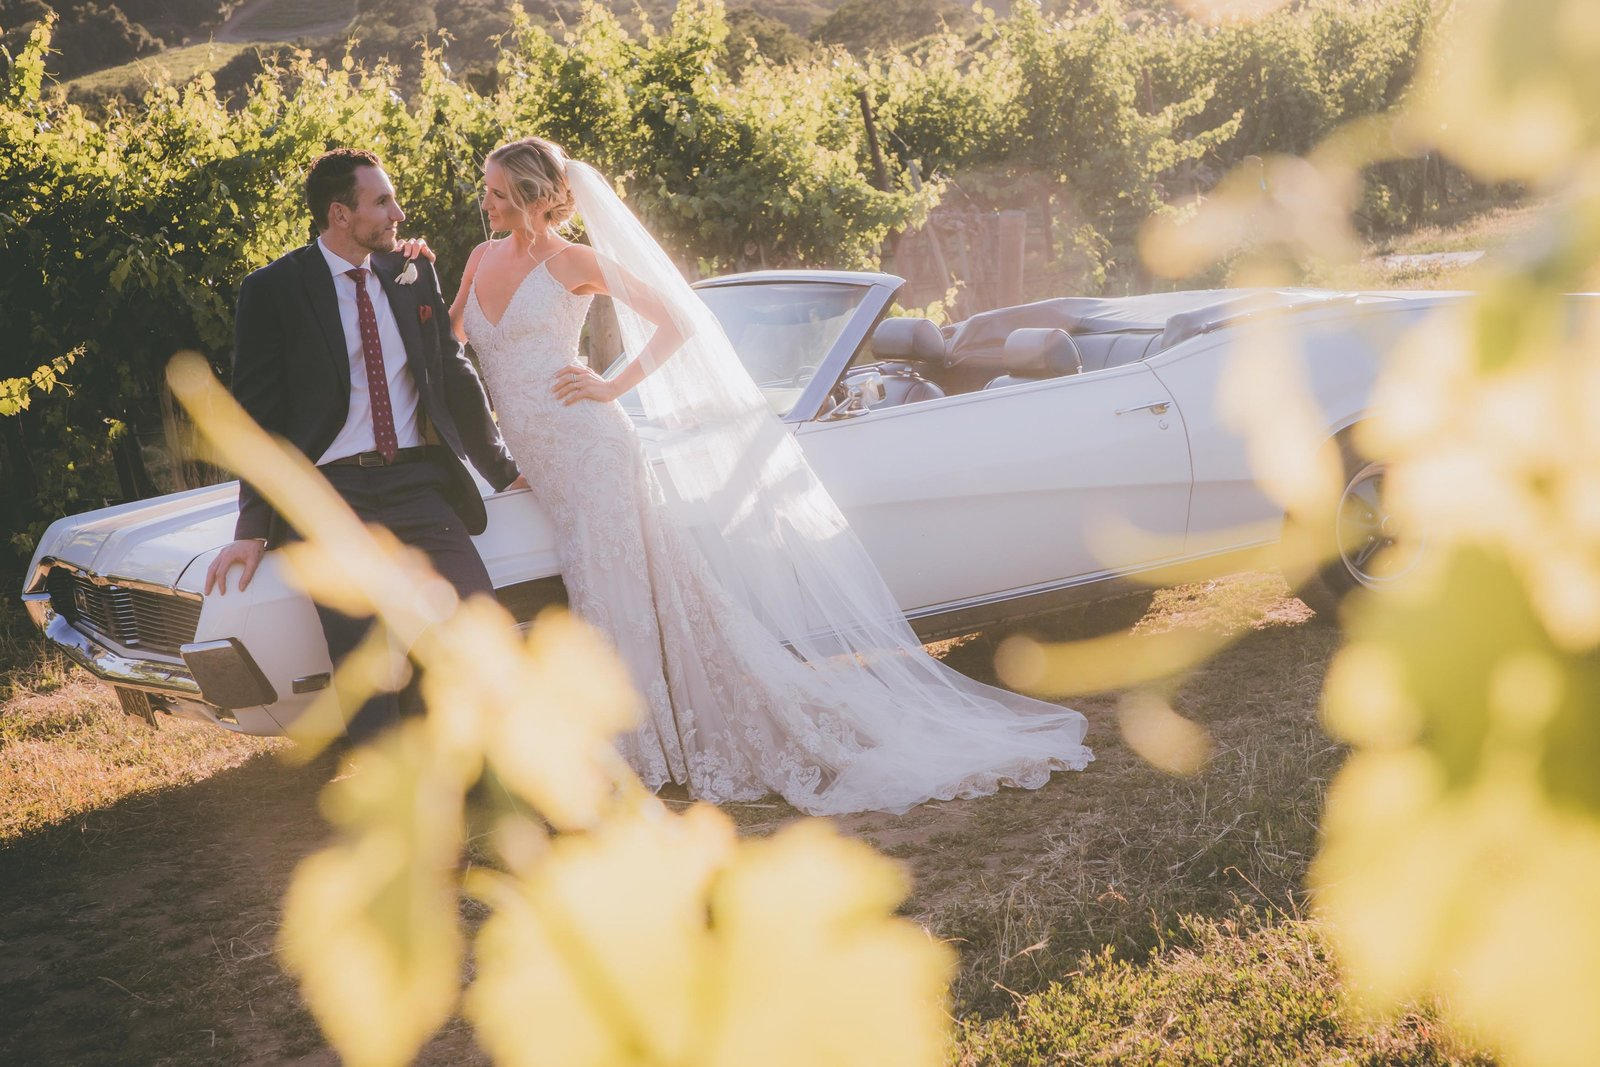 Groom and bride pose against white car in vineyard.